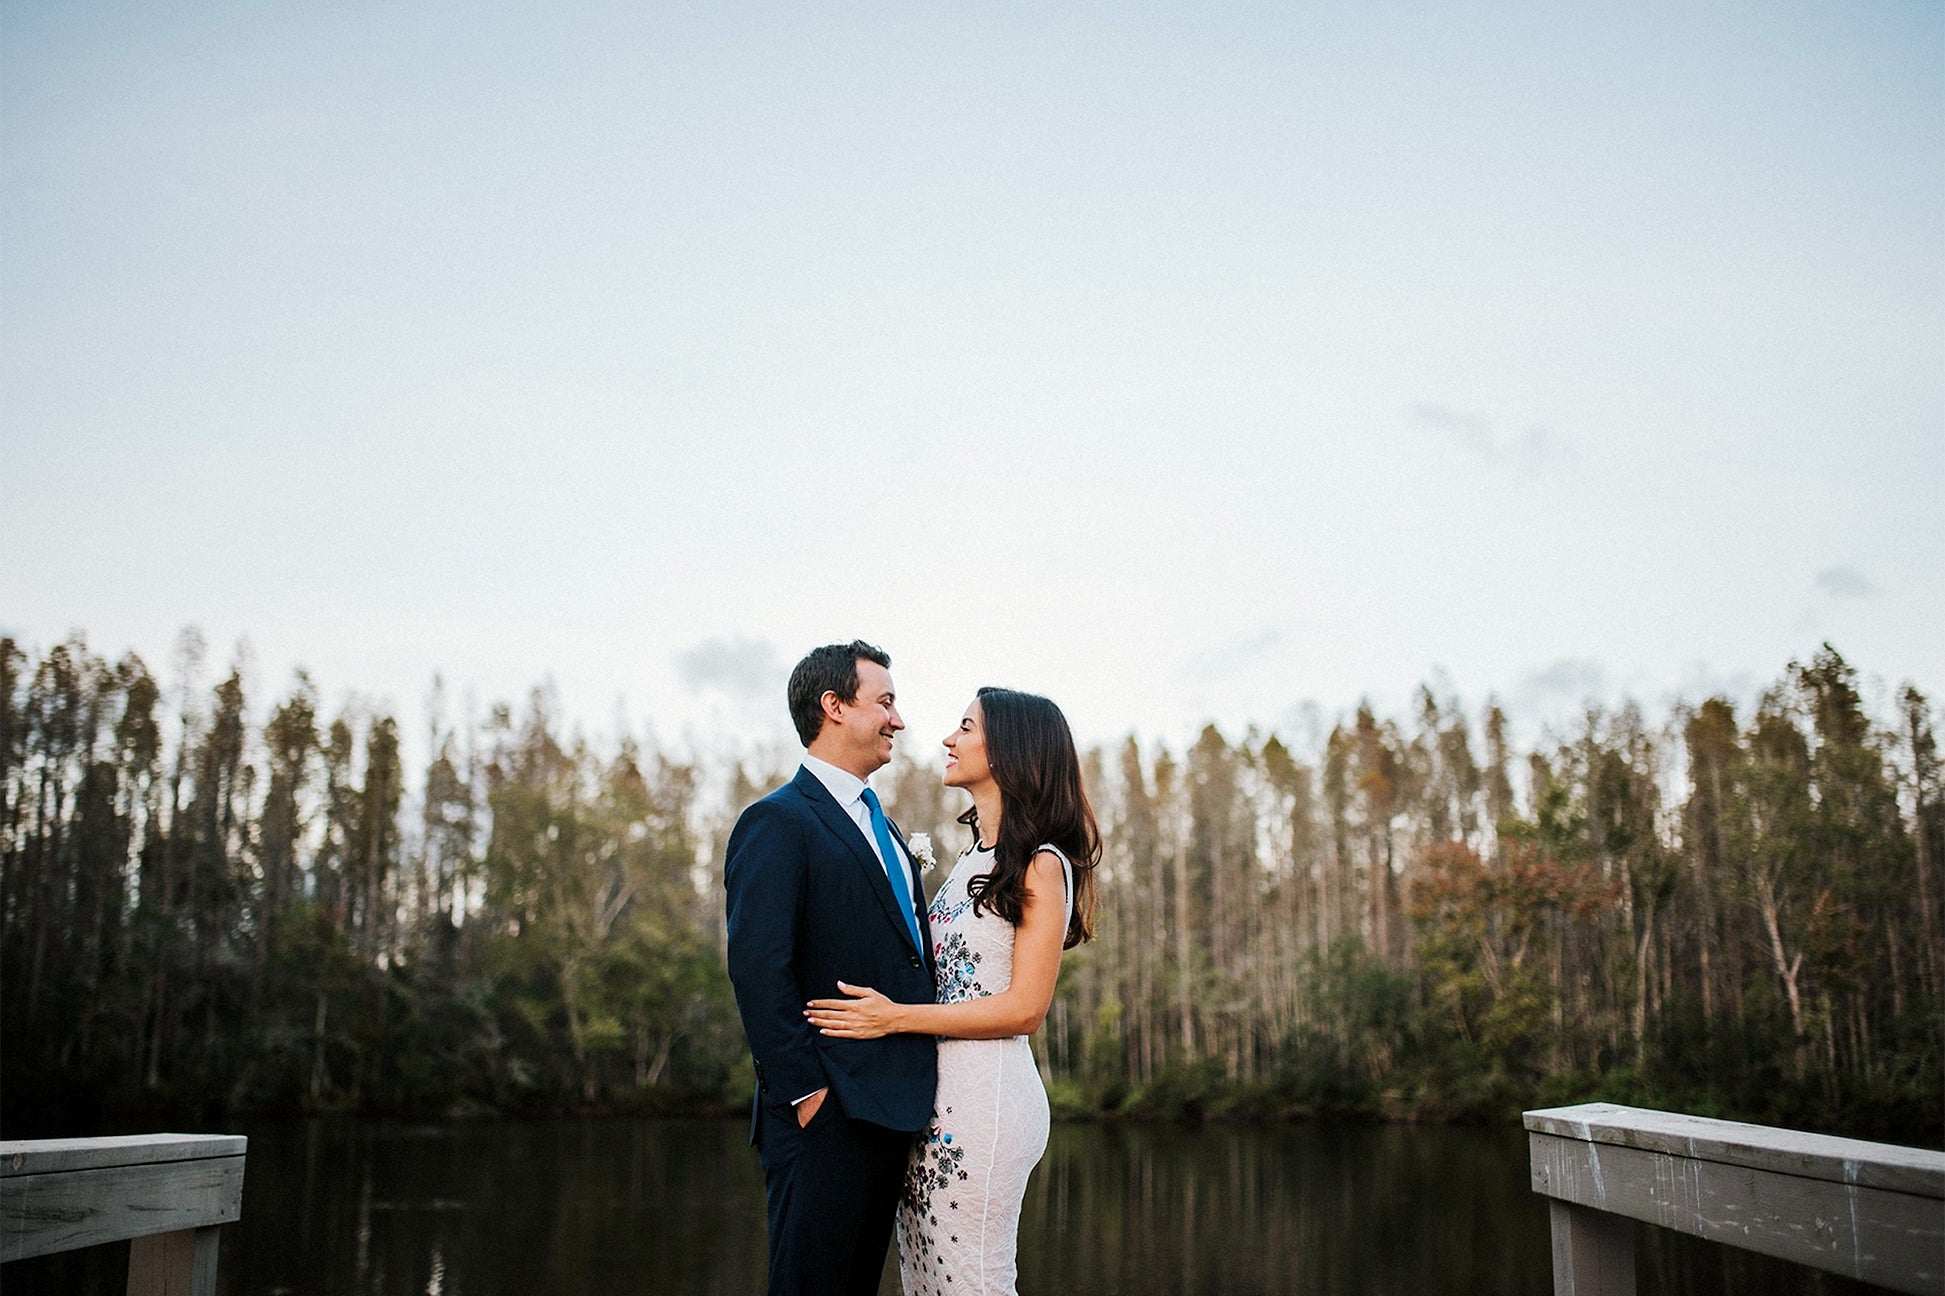 Couple by a lake on their wedding day